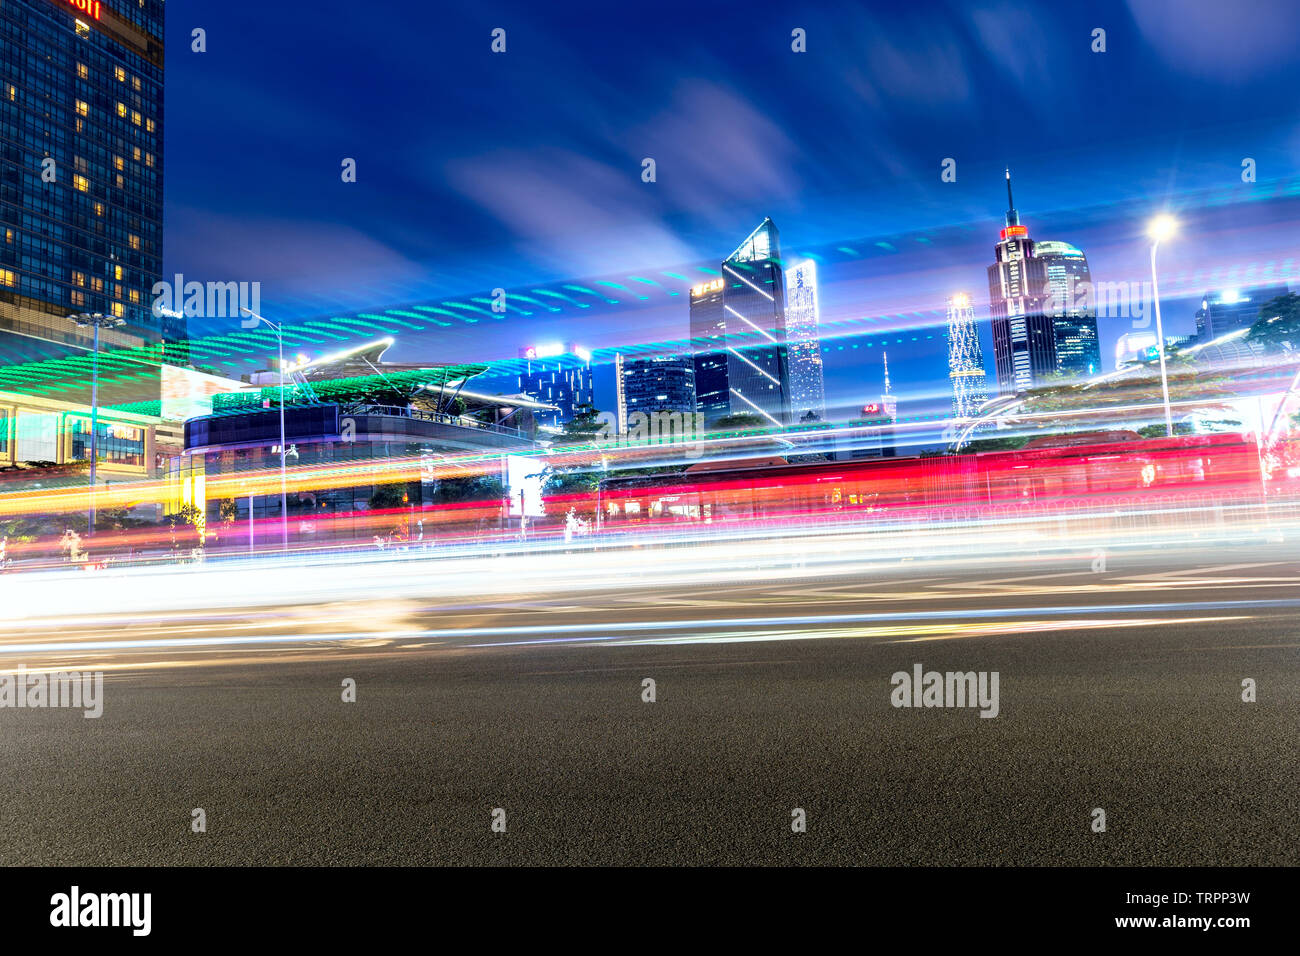 The hasty traffic flow of Guangzhou Sports Center in China - Stock Image